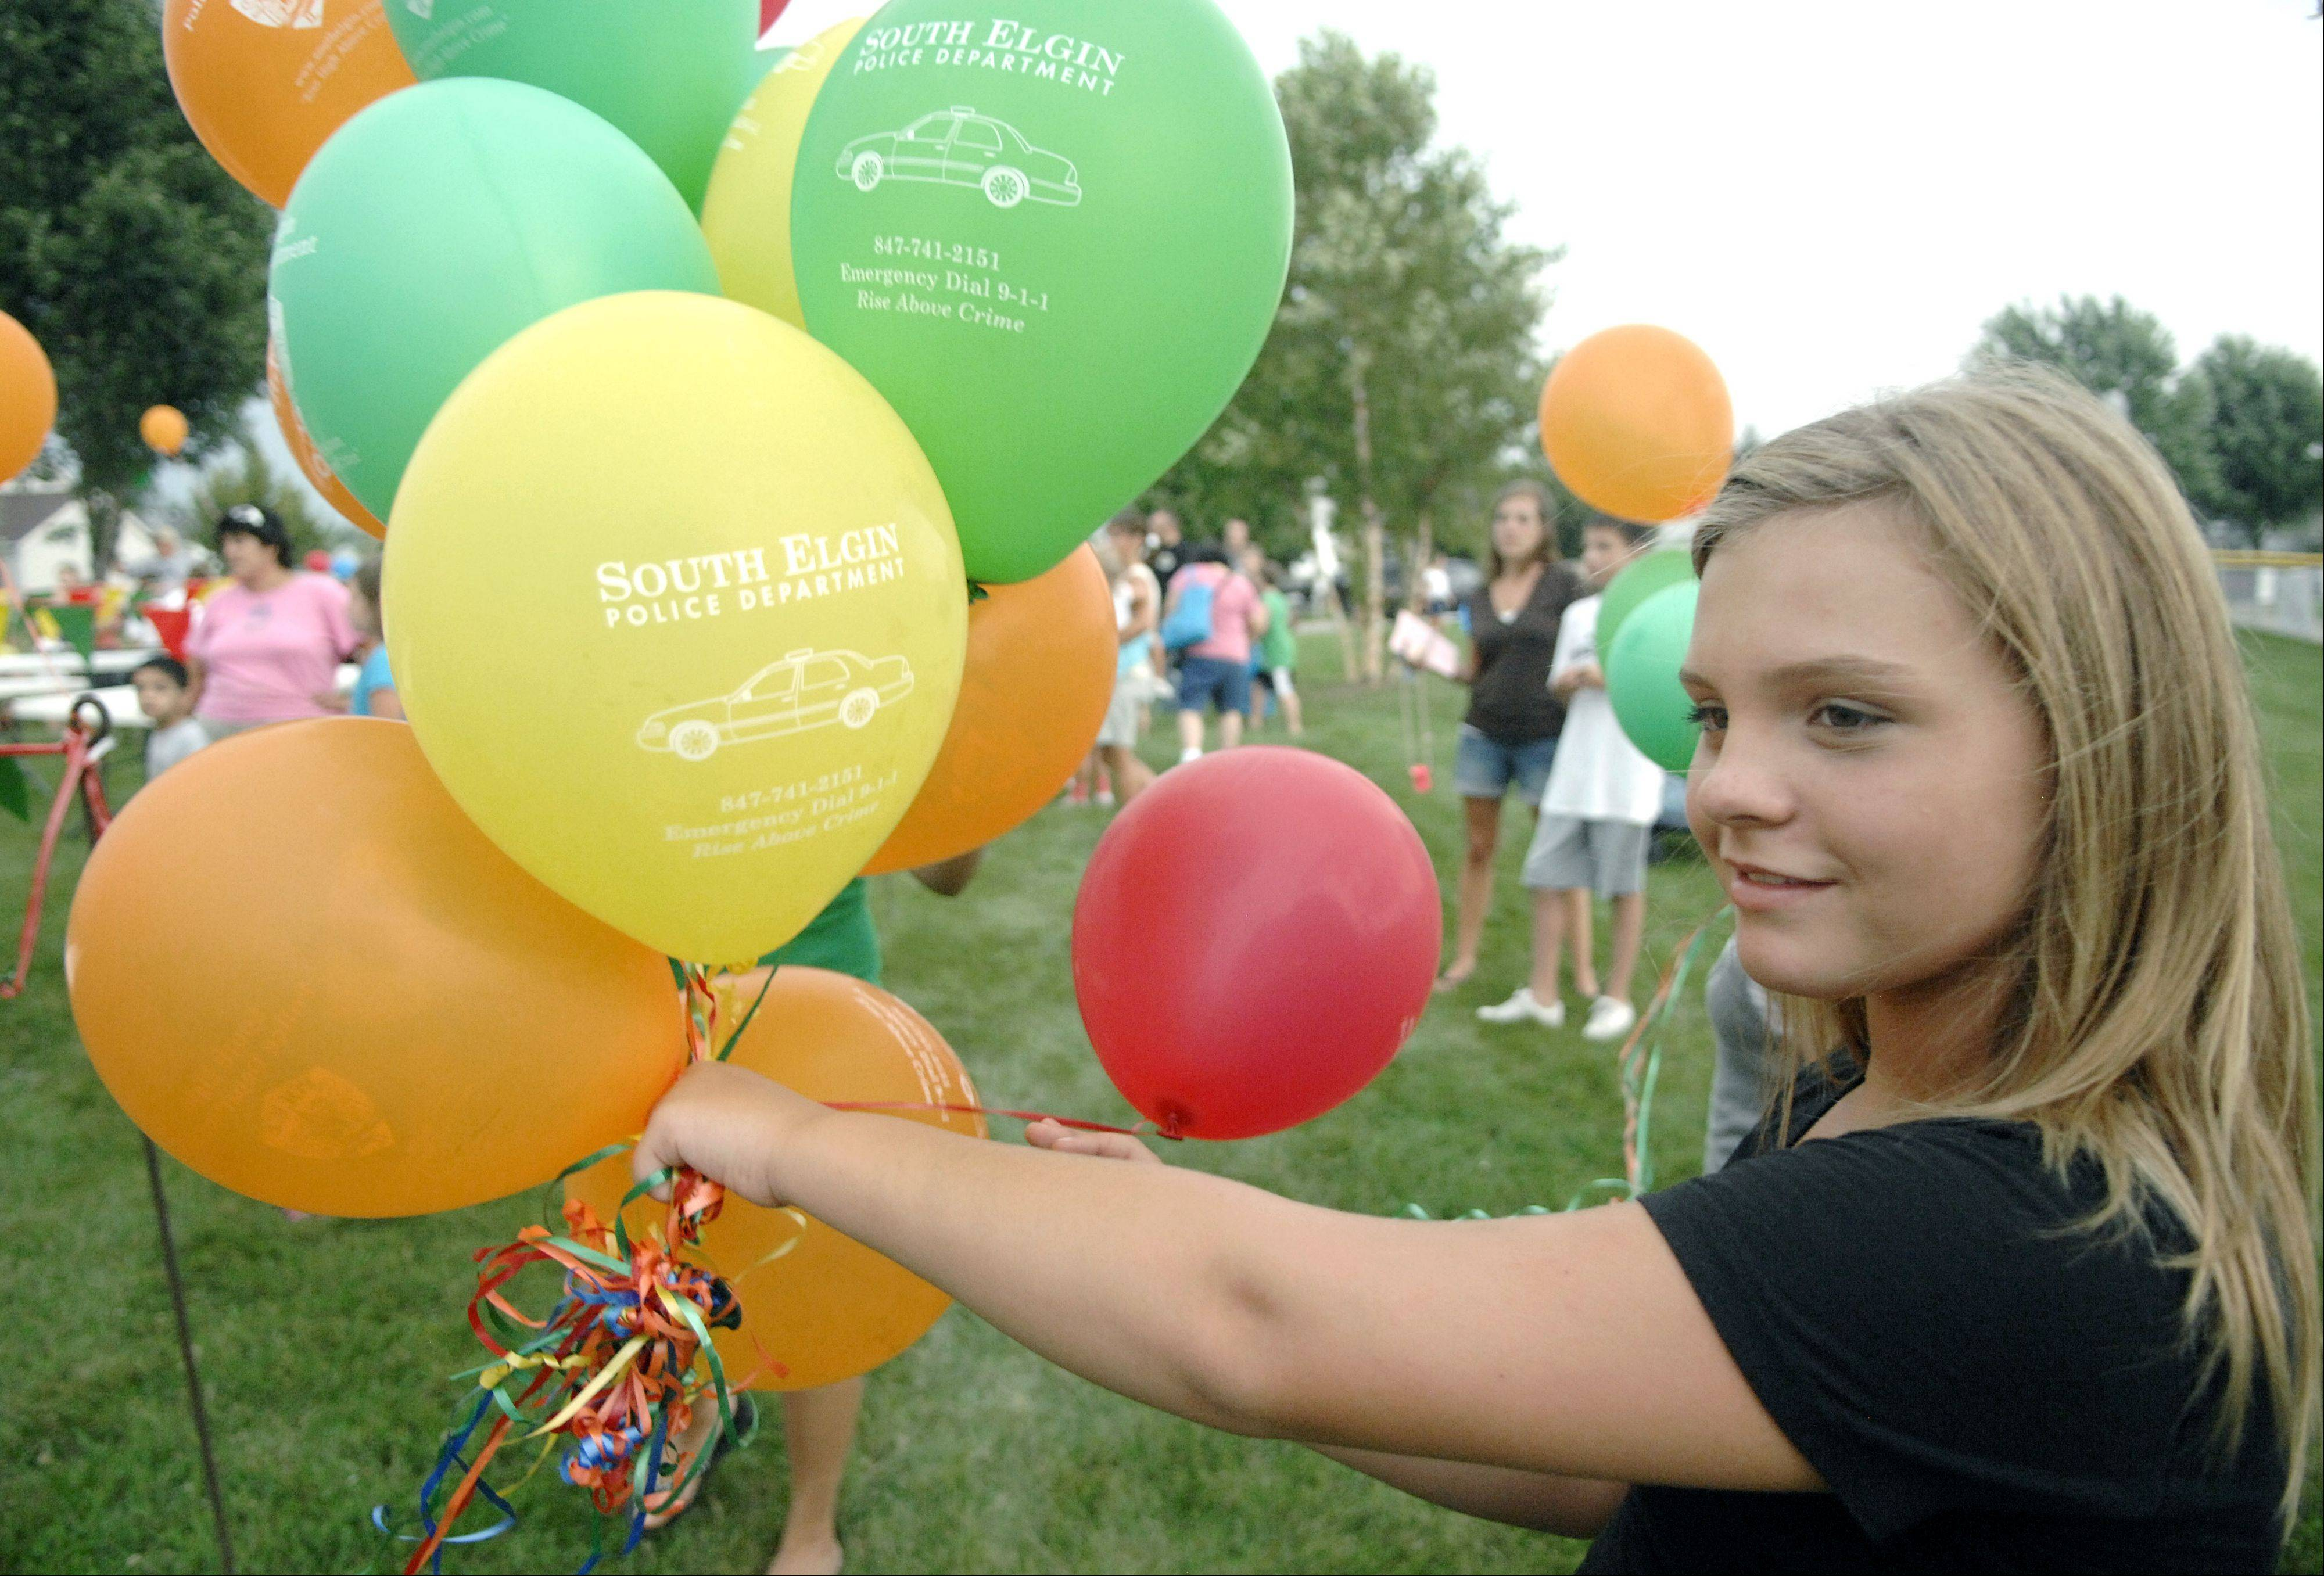 Alyssa Riske, 11, of South Elgin helps pass out balloons for the South Elgin Police Department during National Night Out in Concord Park, Kids were also treated to games, face painting and more.